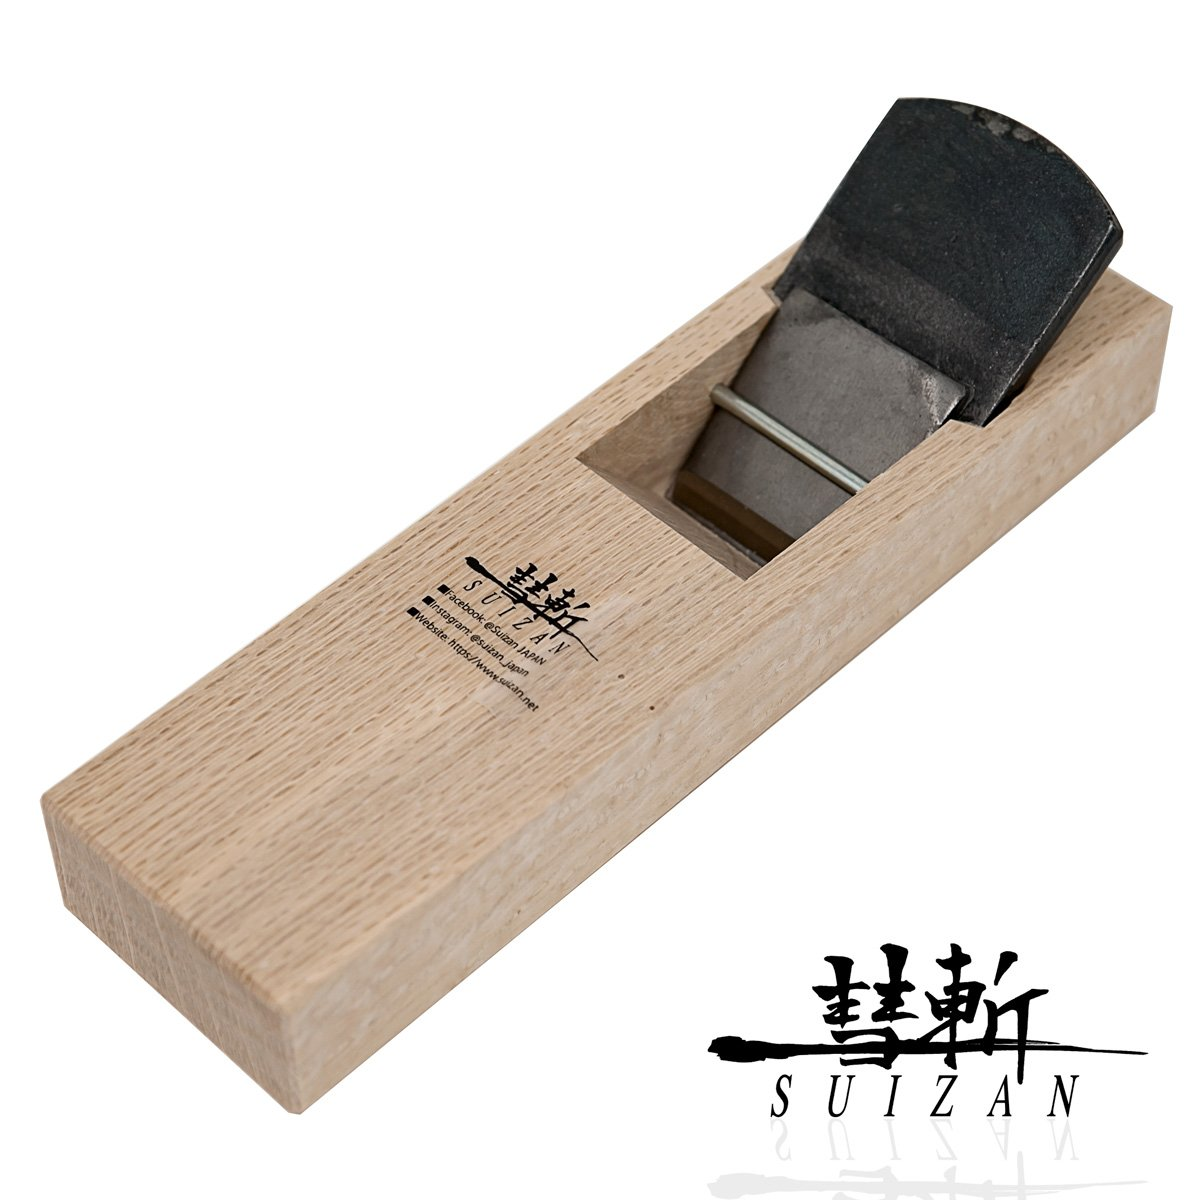 SUIZAN hand plane 50mm